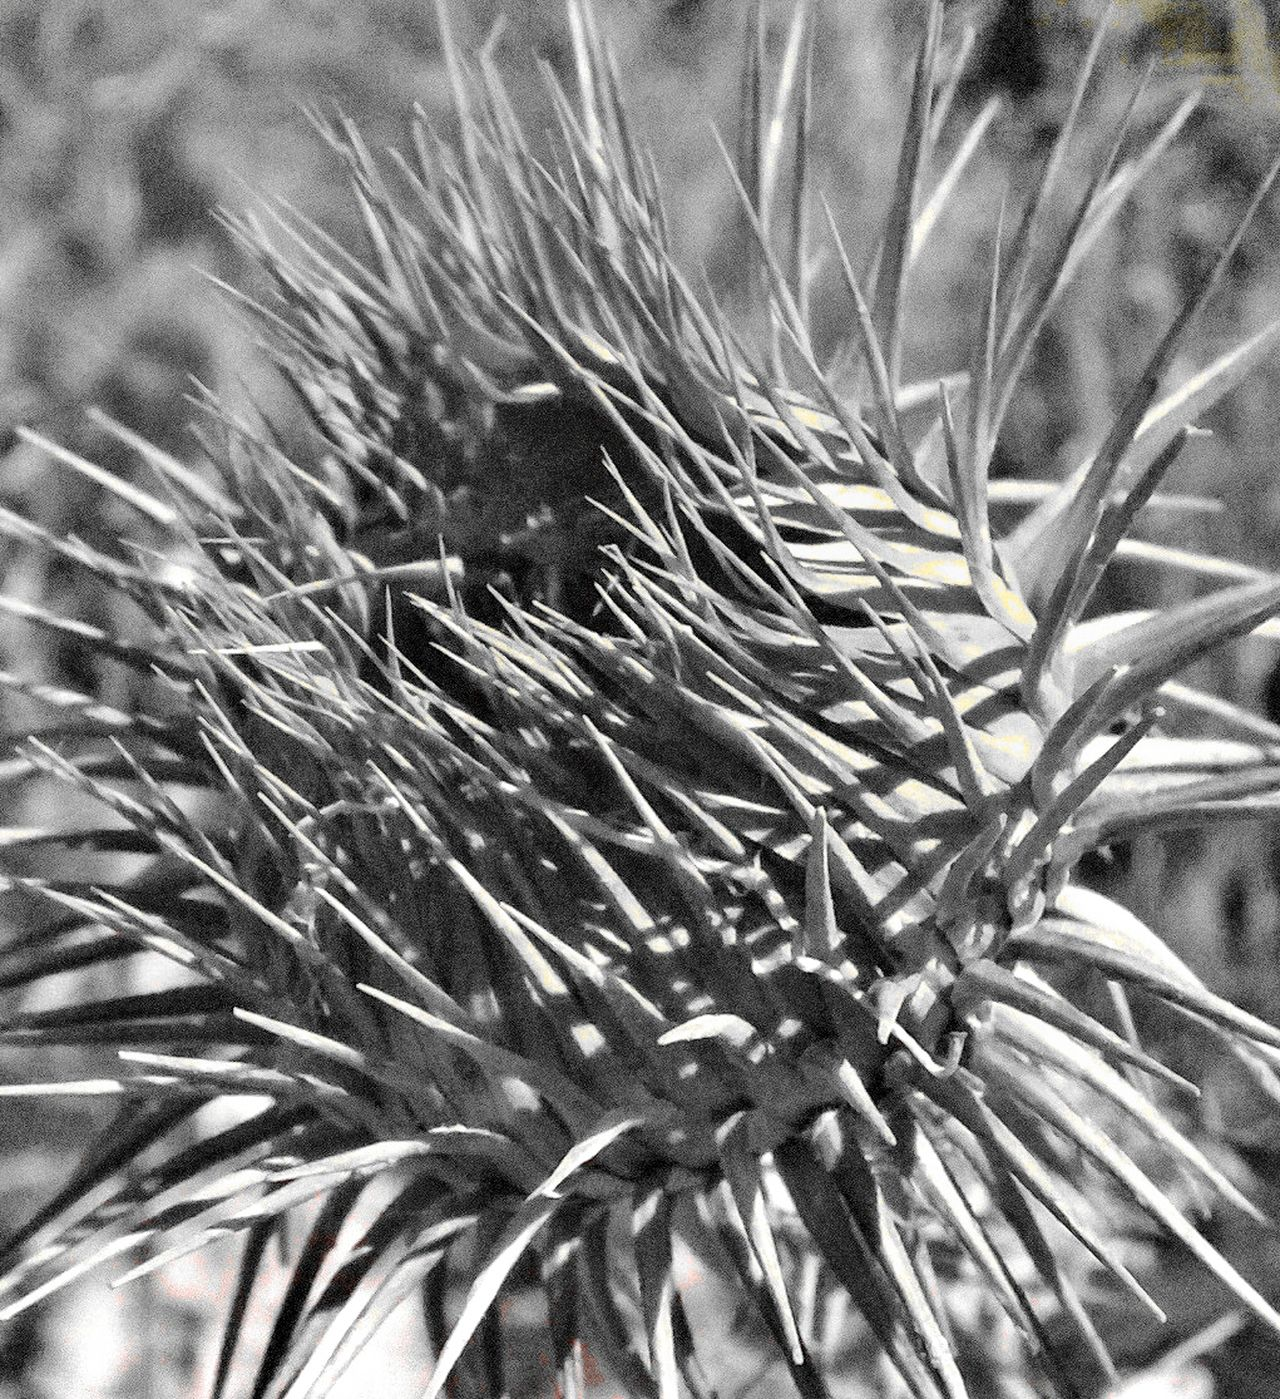 Growth Close-up No People Backgrounds Nature Plant Full Frame Outdoors Agriculture Day Ear Of Wheat Beauty In Nature Espinas GetbetterwithAlex EyeEm Gallery Cardo Textured